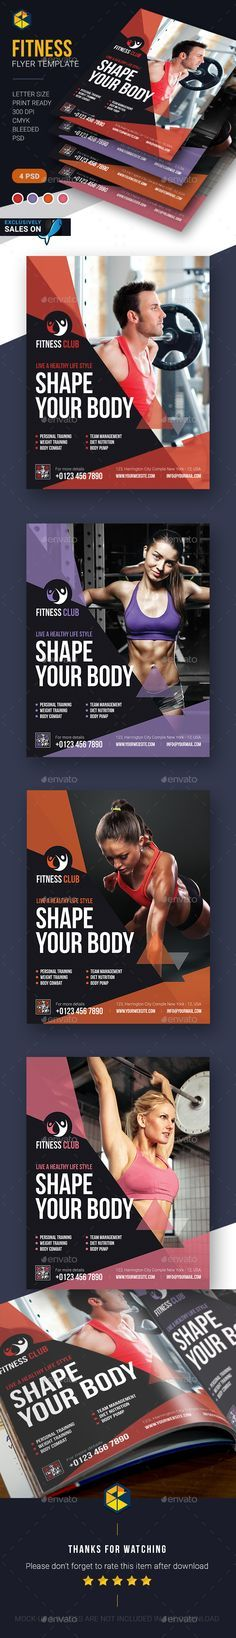 Best 25+ Fitness flyer ideas on Pinterest Flyer template - fitness flyer